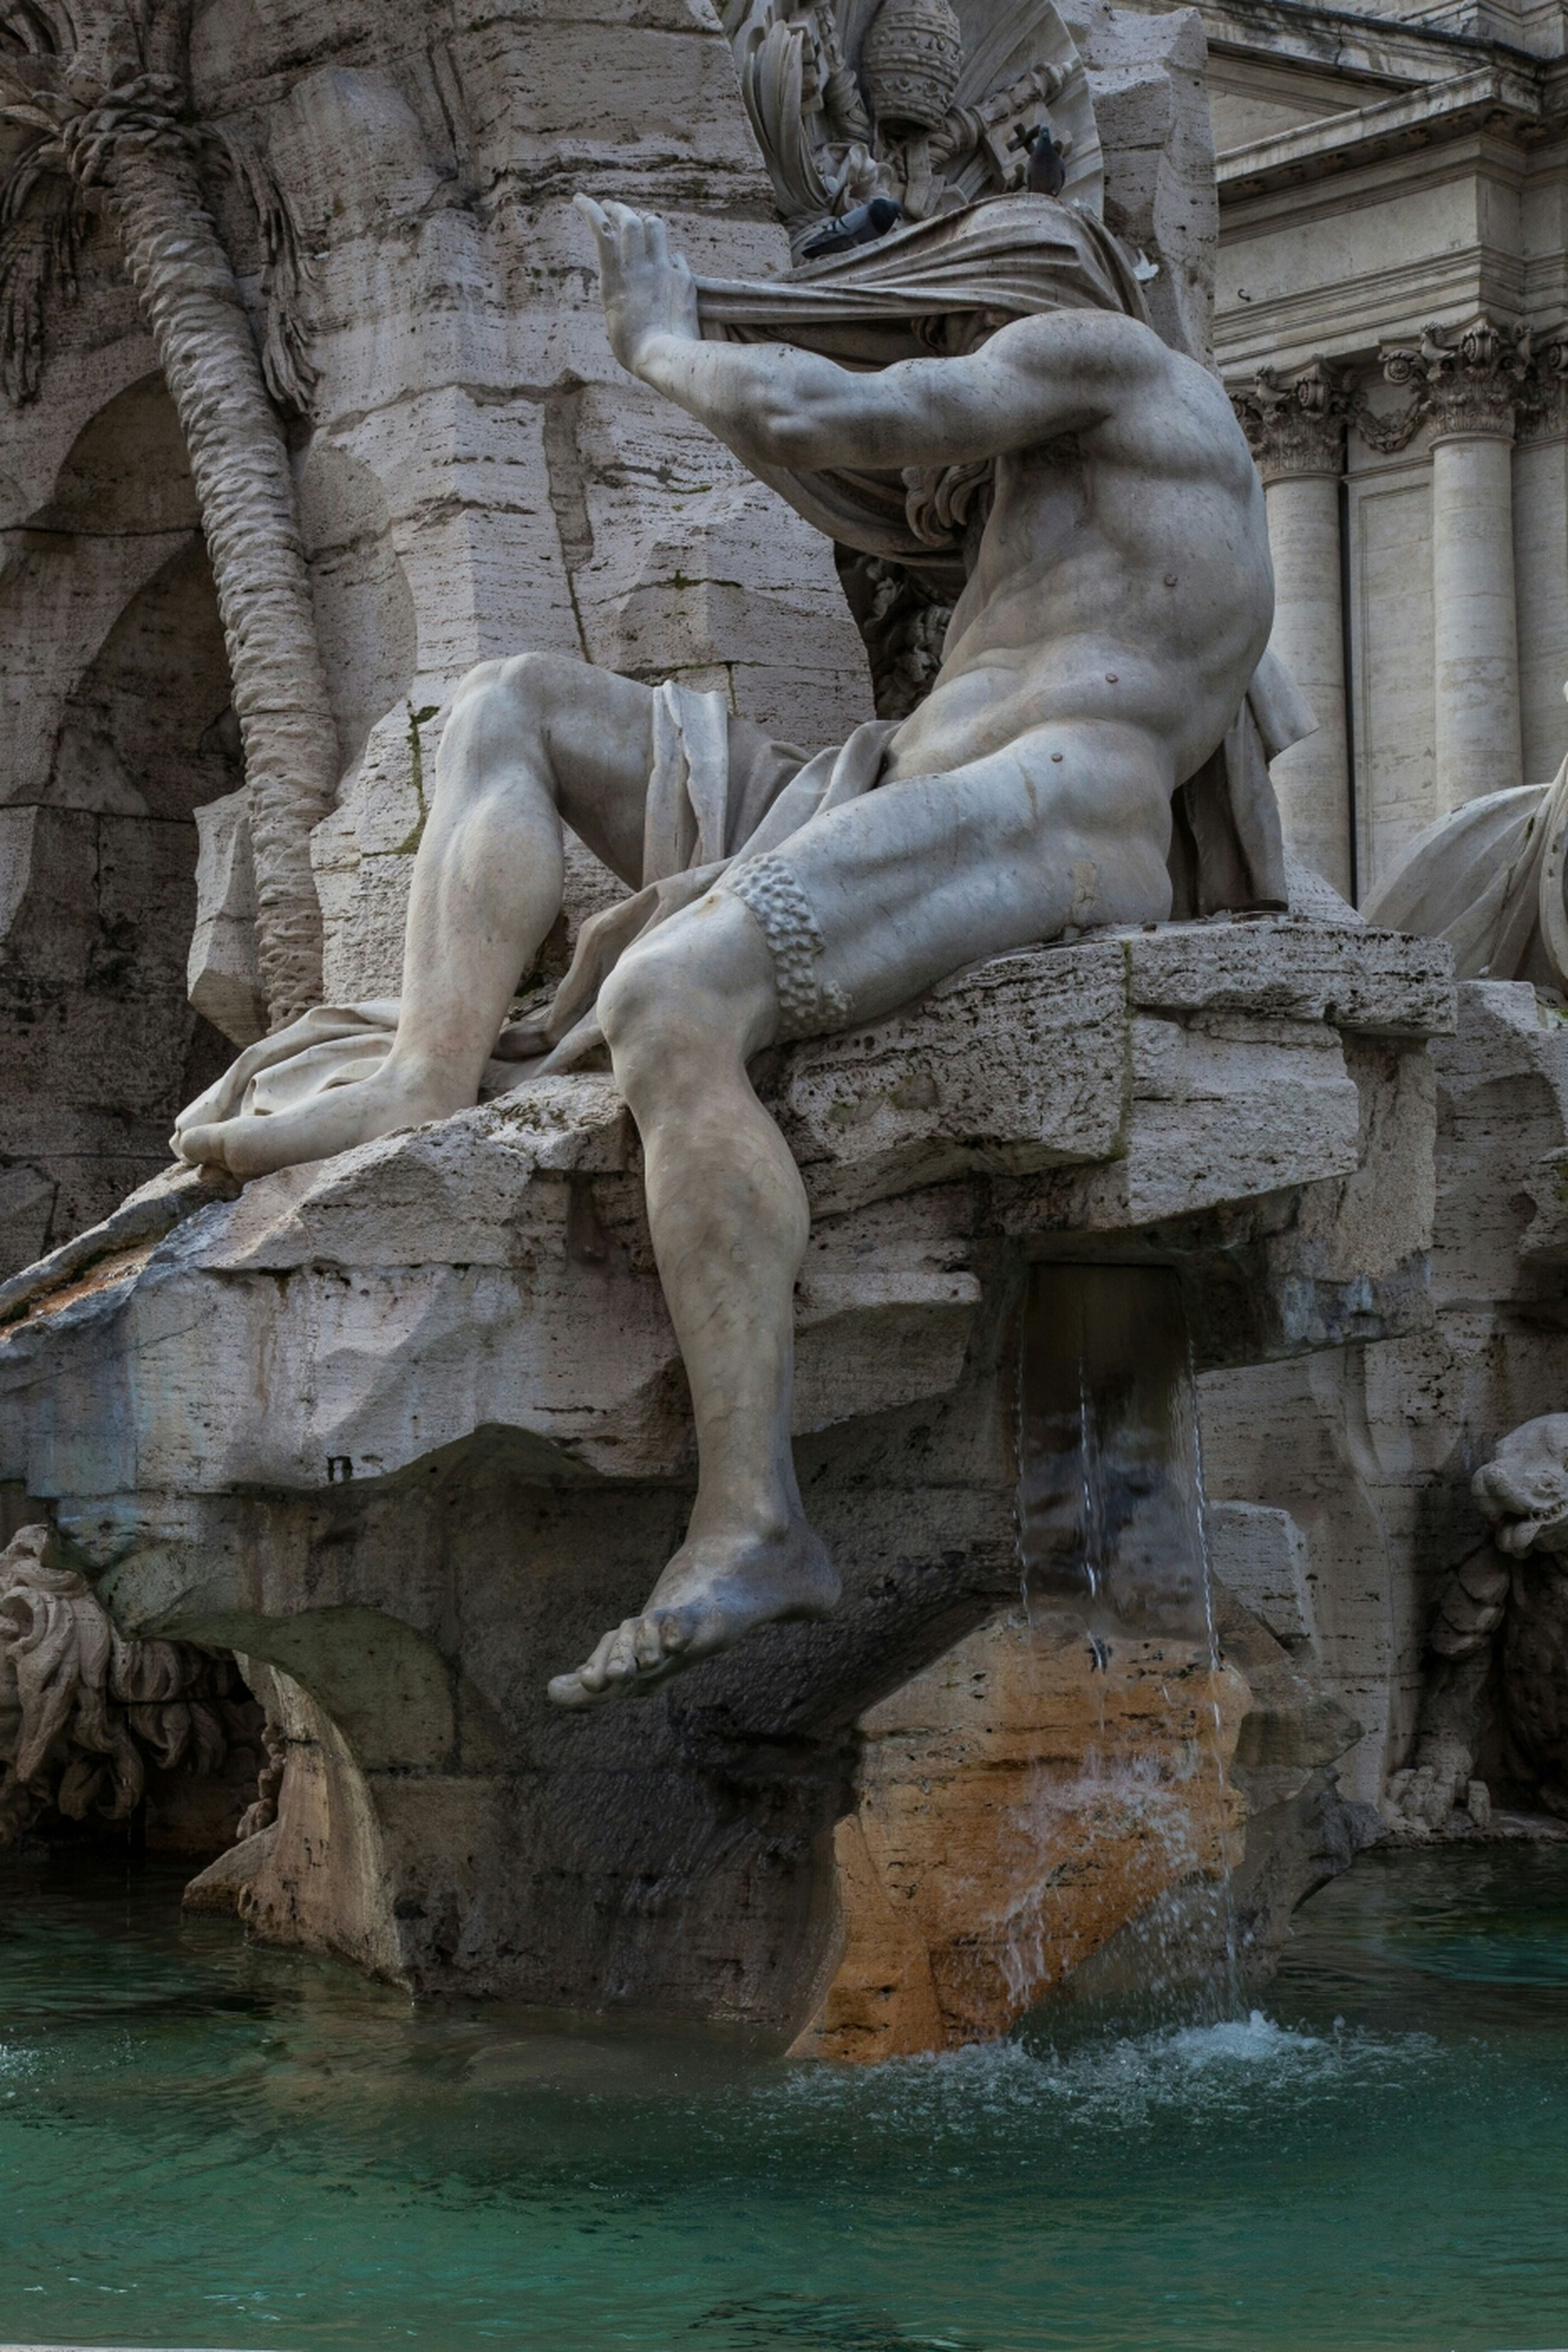 water, statue, sculpture, human representation, art and craft, built structure, architecture, art, waterfront, creativity, building exterior, day, history, outdoors, animal representation, fountain, carving - craft product, no people